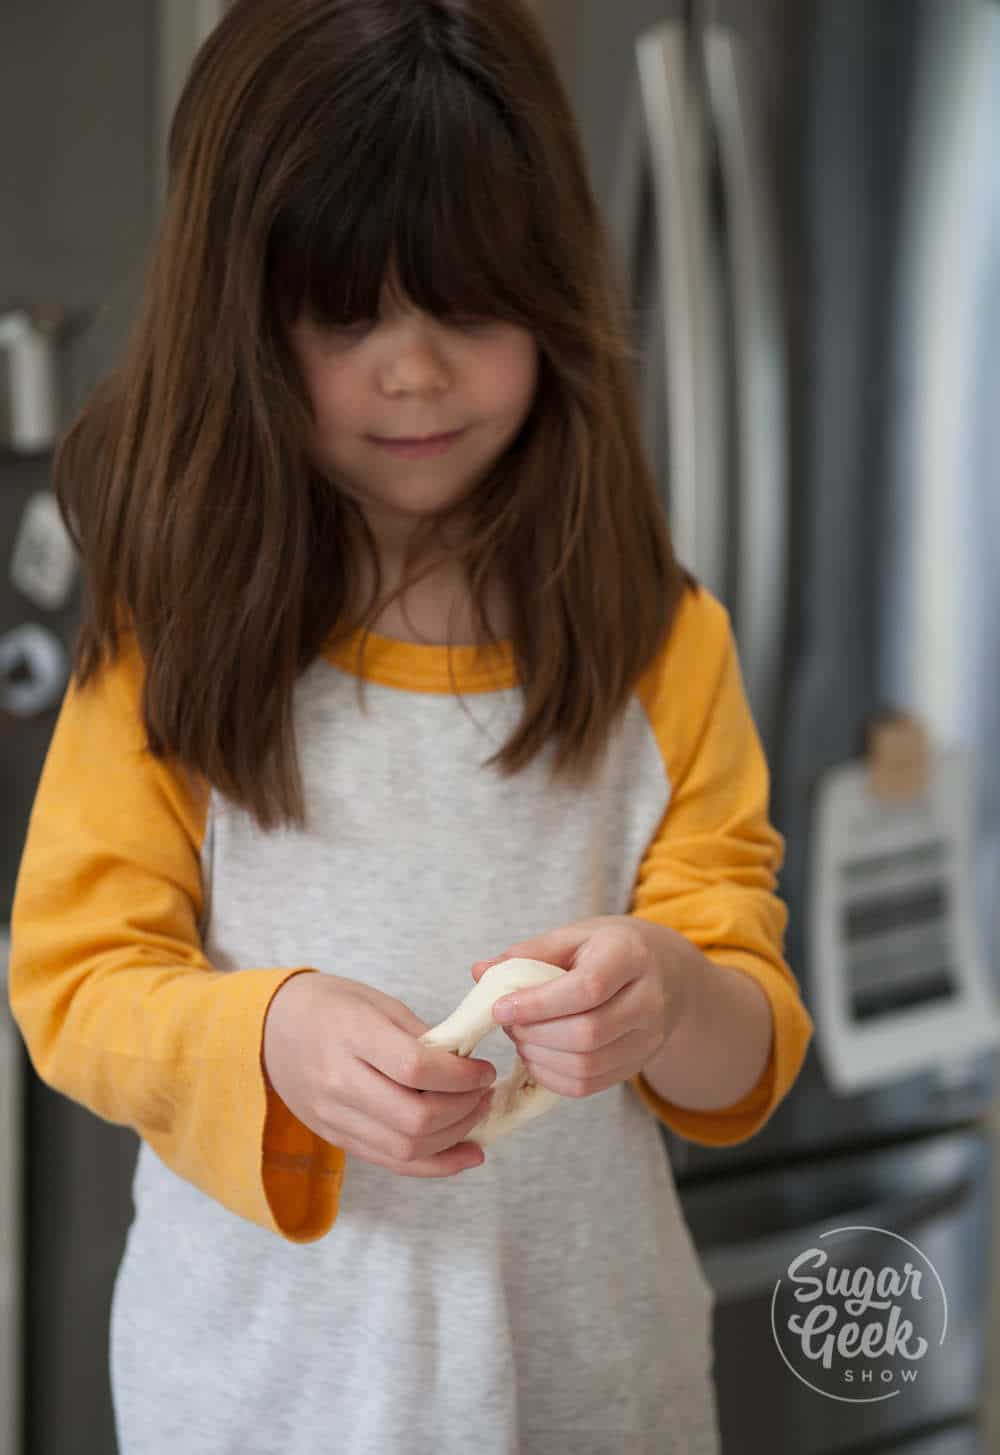 Little girl with brown shoulder-length hair and white and yellow shirt shaping a bagel with her hands